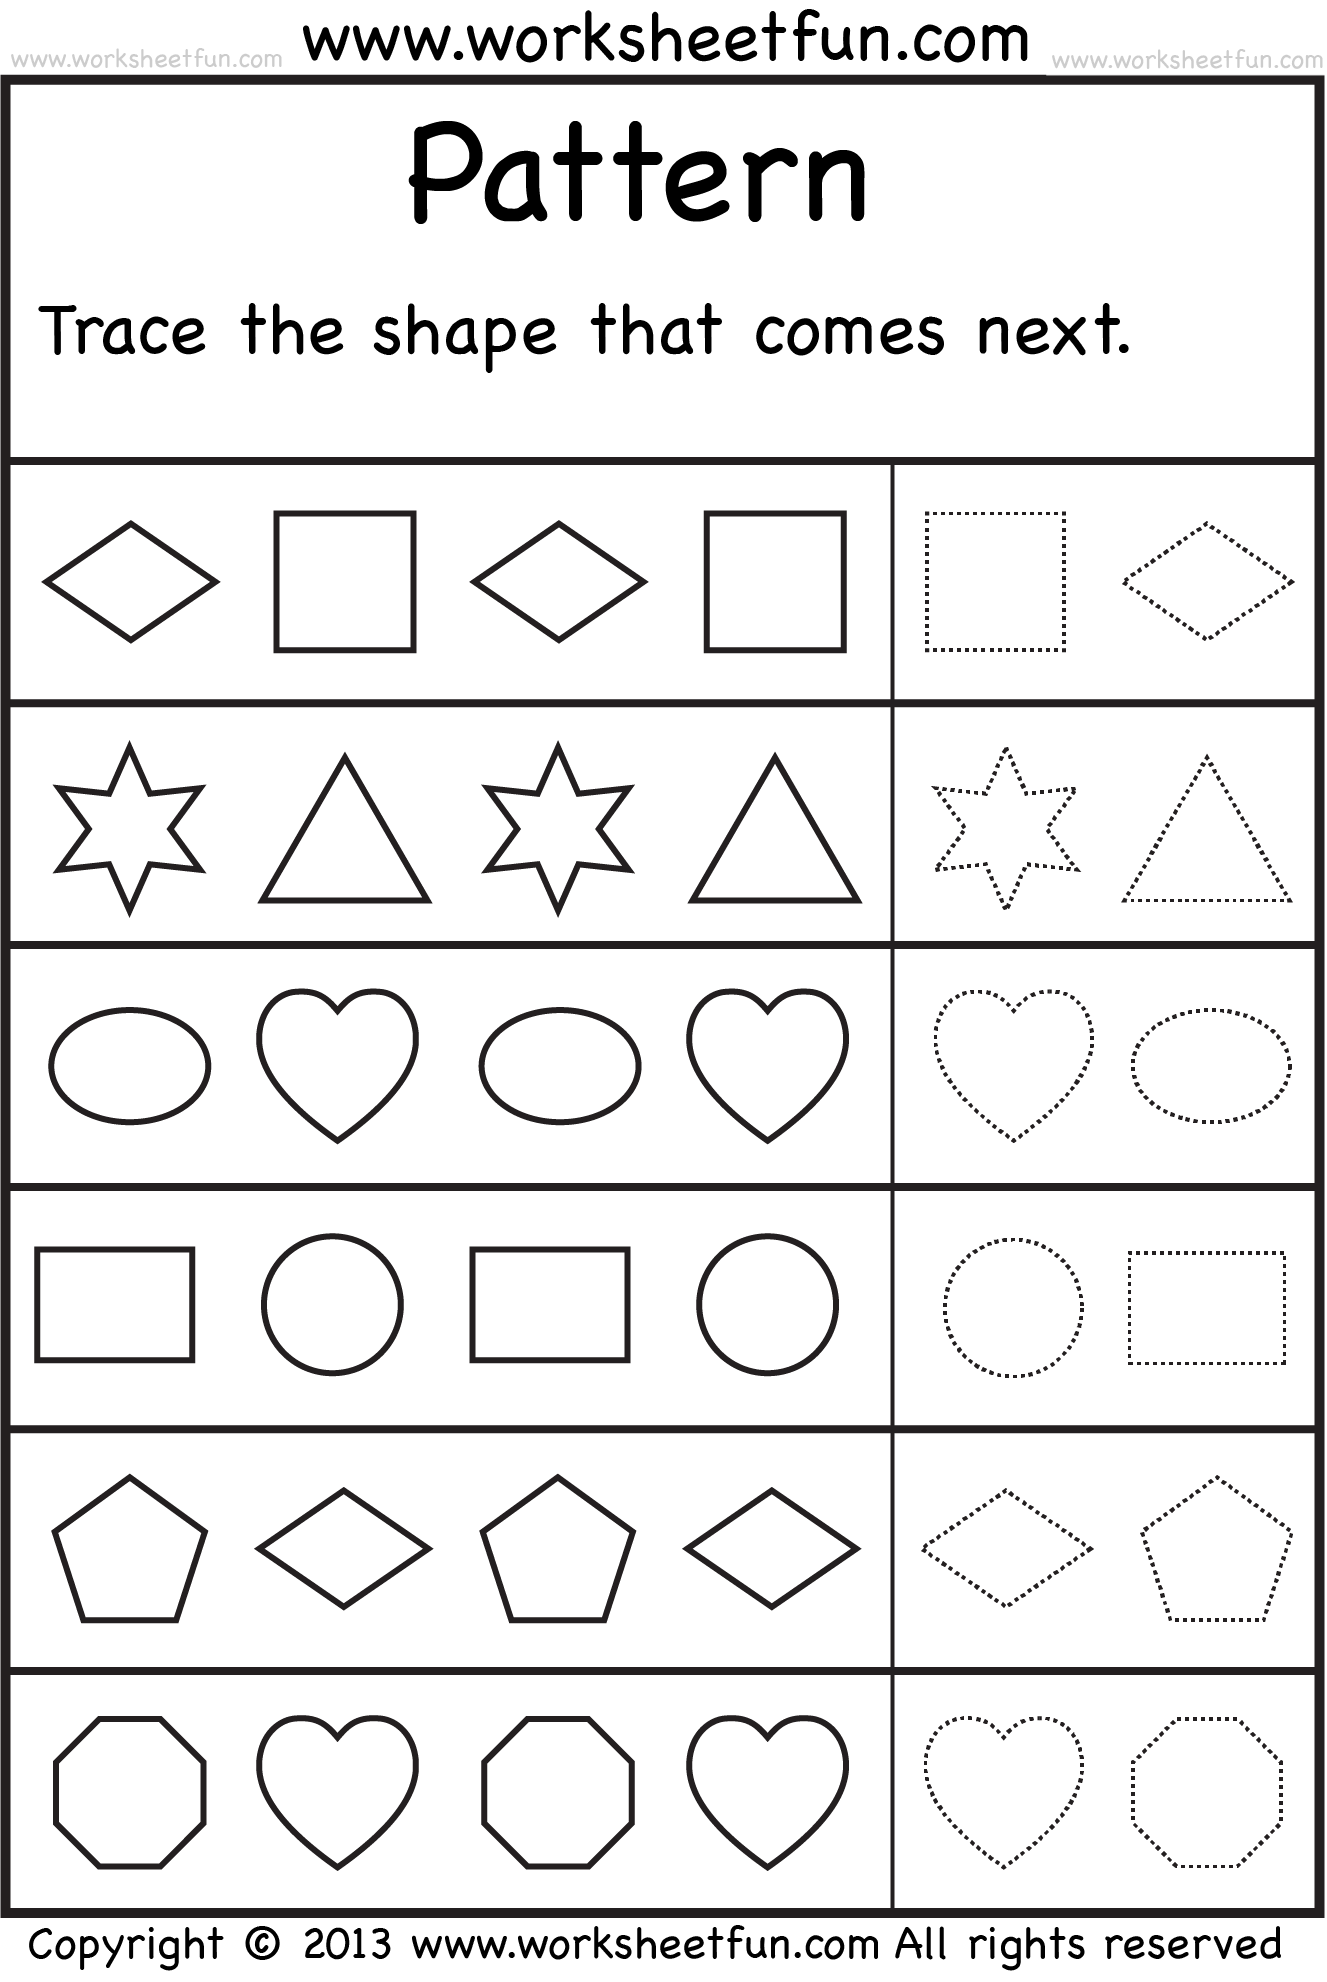 Printables Pattern Worksheets patterns trace the shape that comes next one worksheet free pattern more preschool worksheets